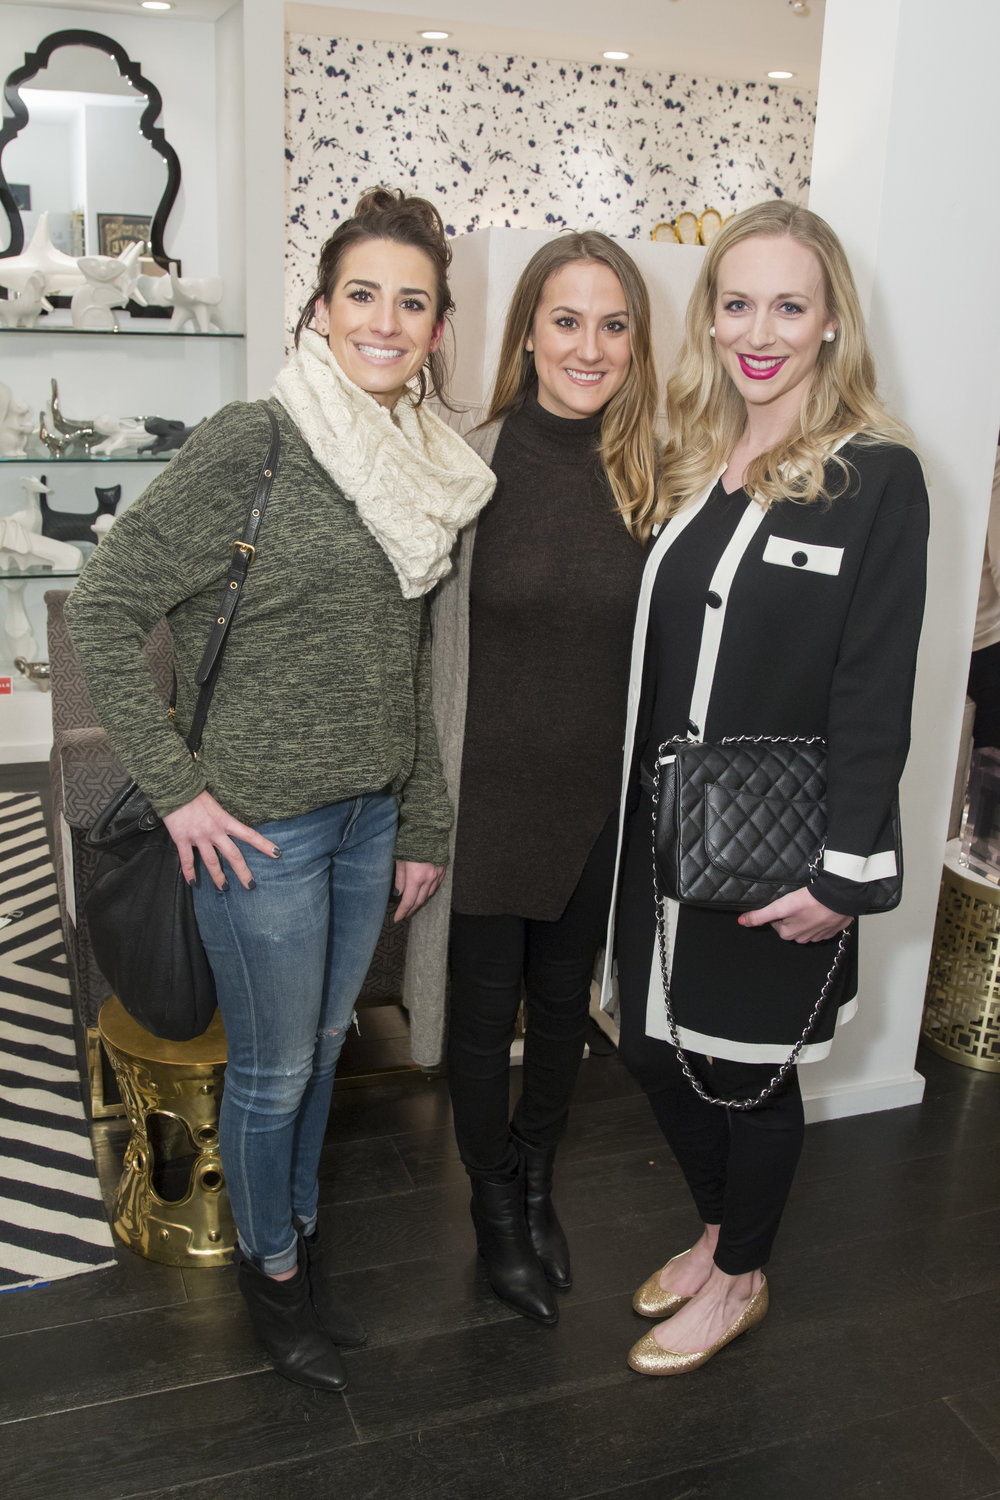 Guests at The JetSetting Fashionista's Sip & Shop Event at Jonathan Adler San Francisco